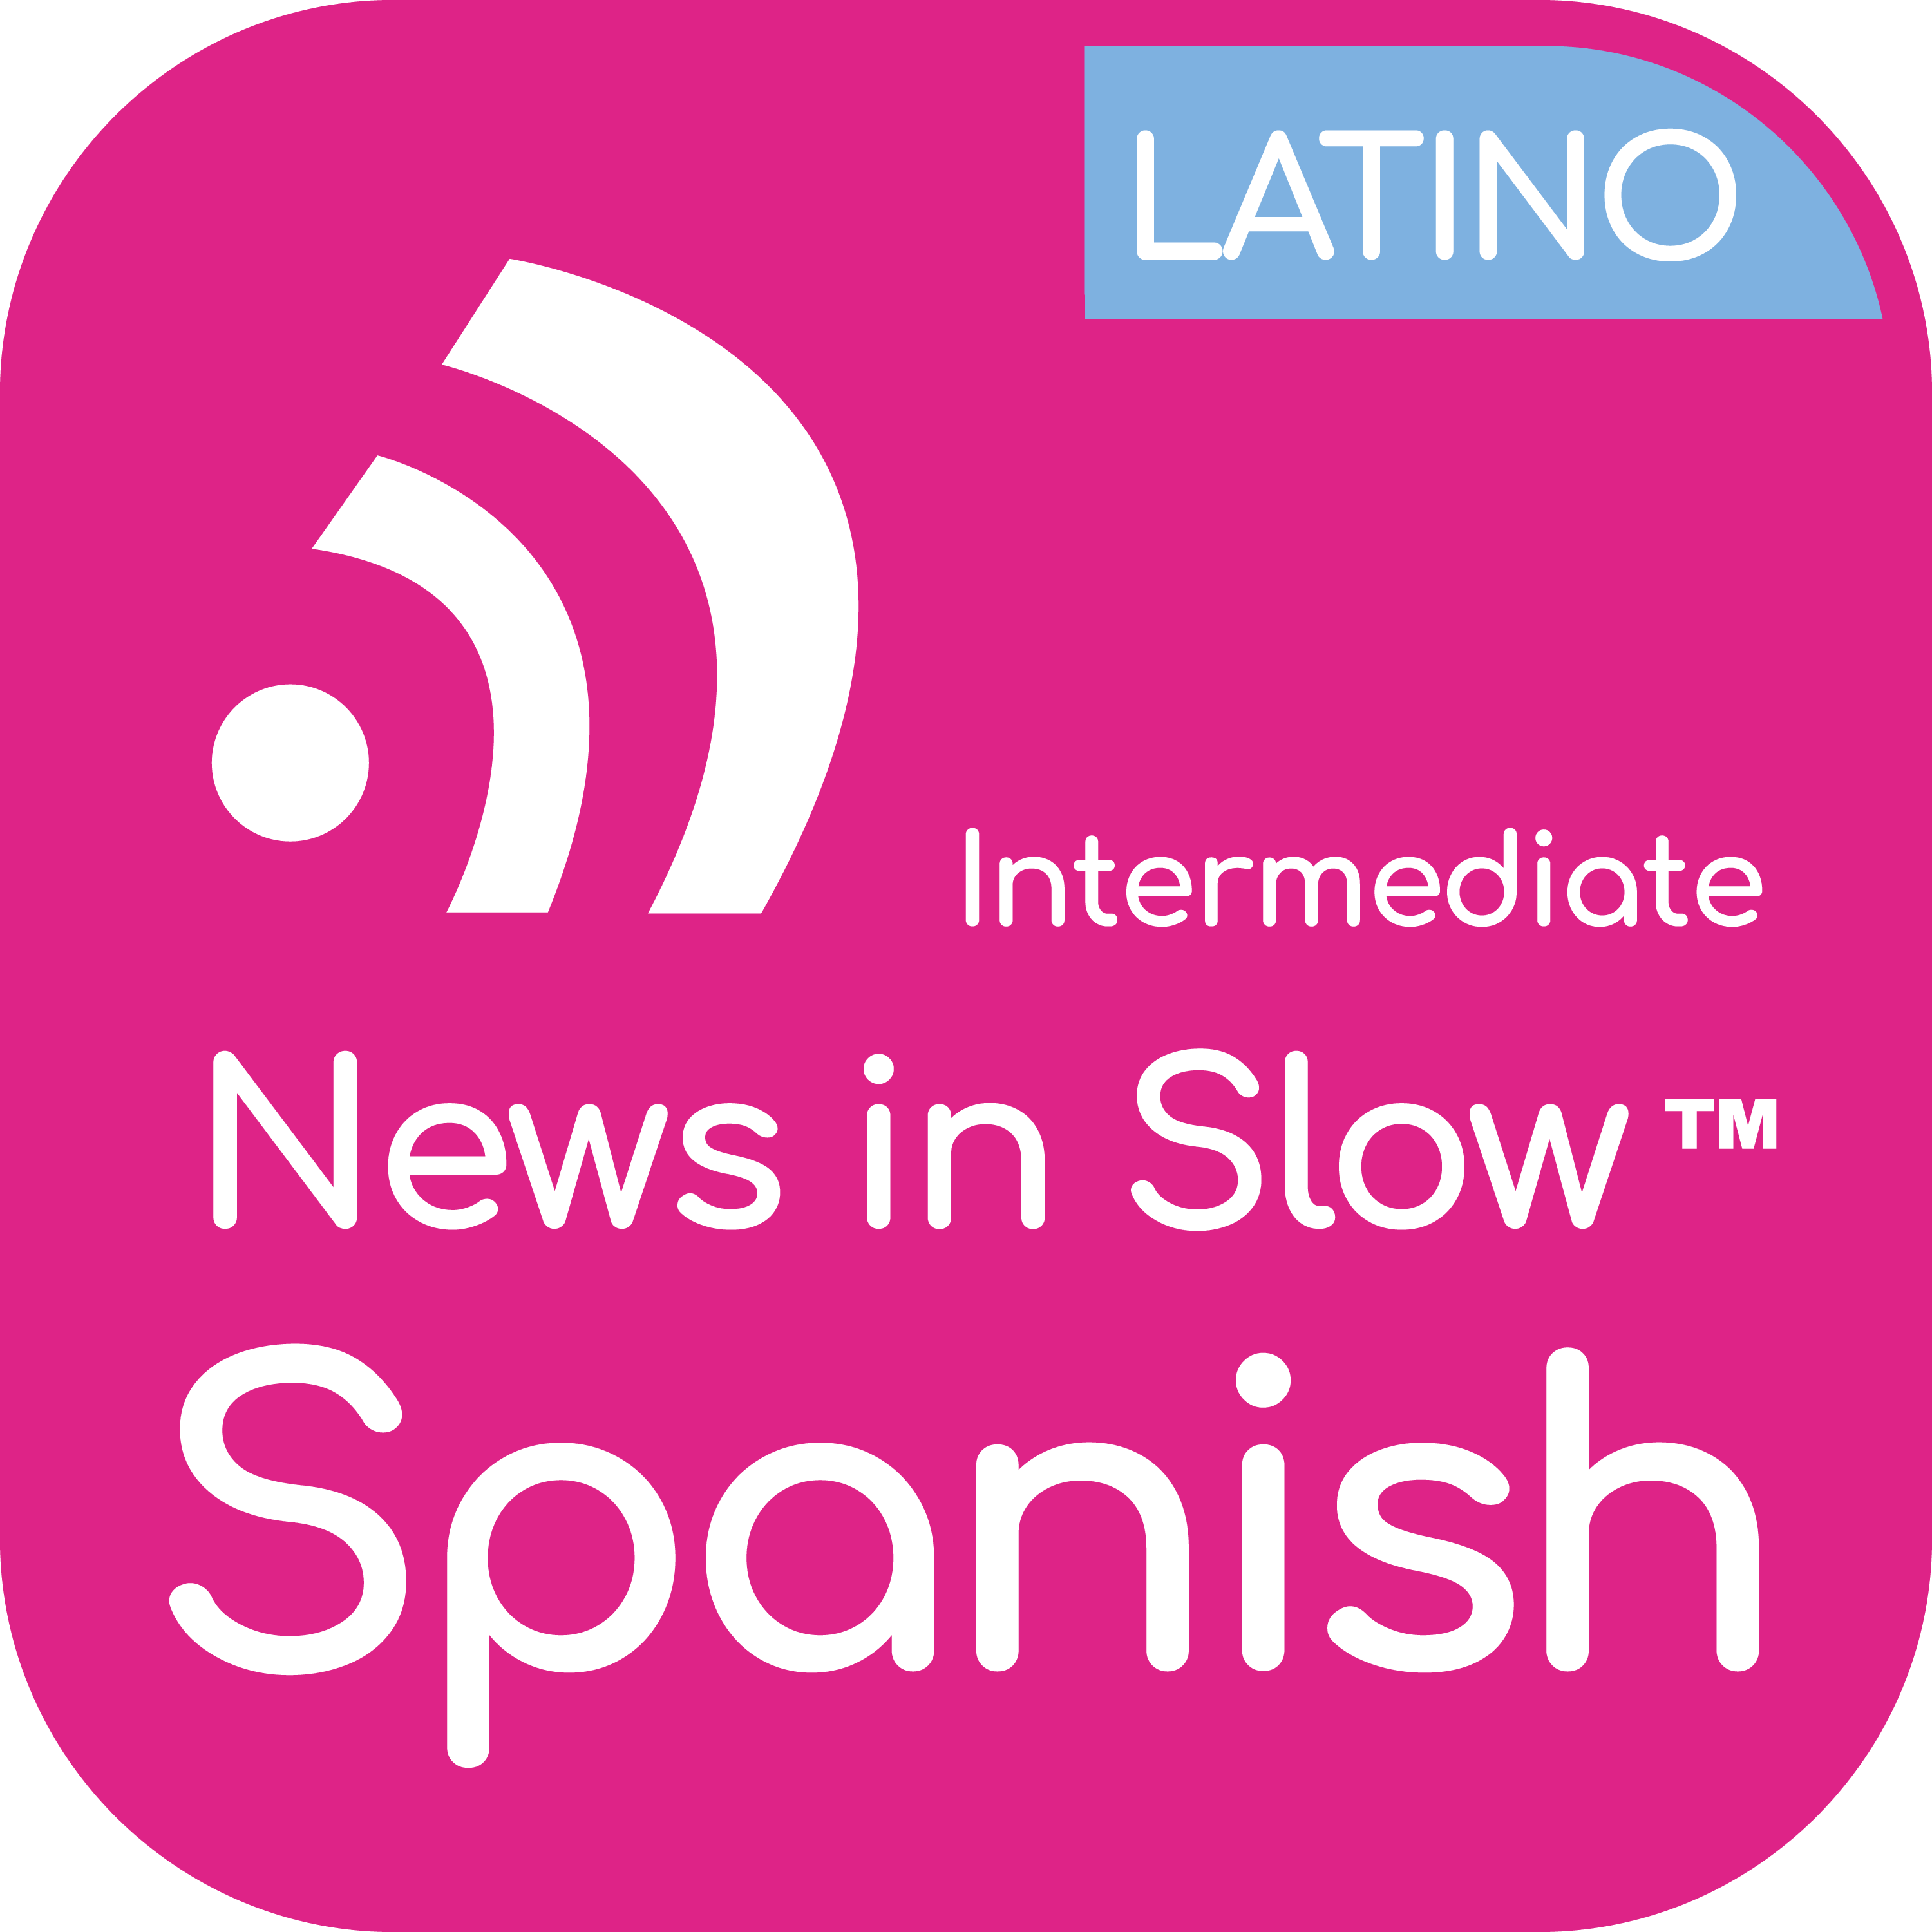 News In Slow Spanish Latino #402 - Learn Spanish through current events